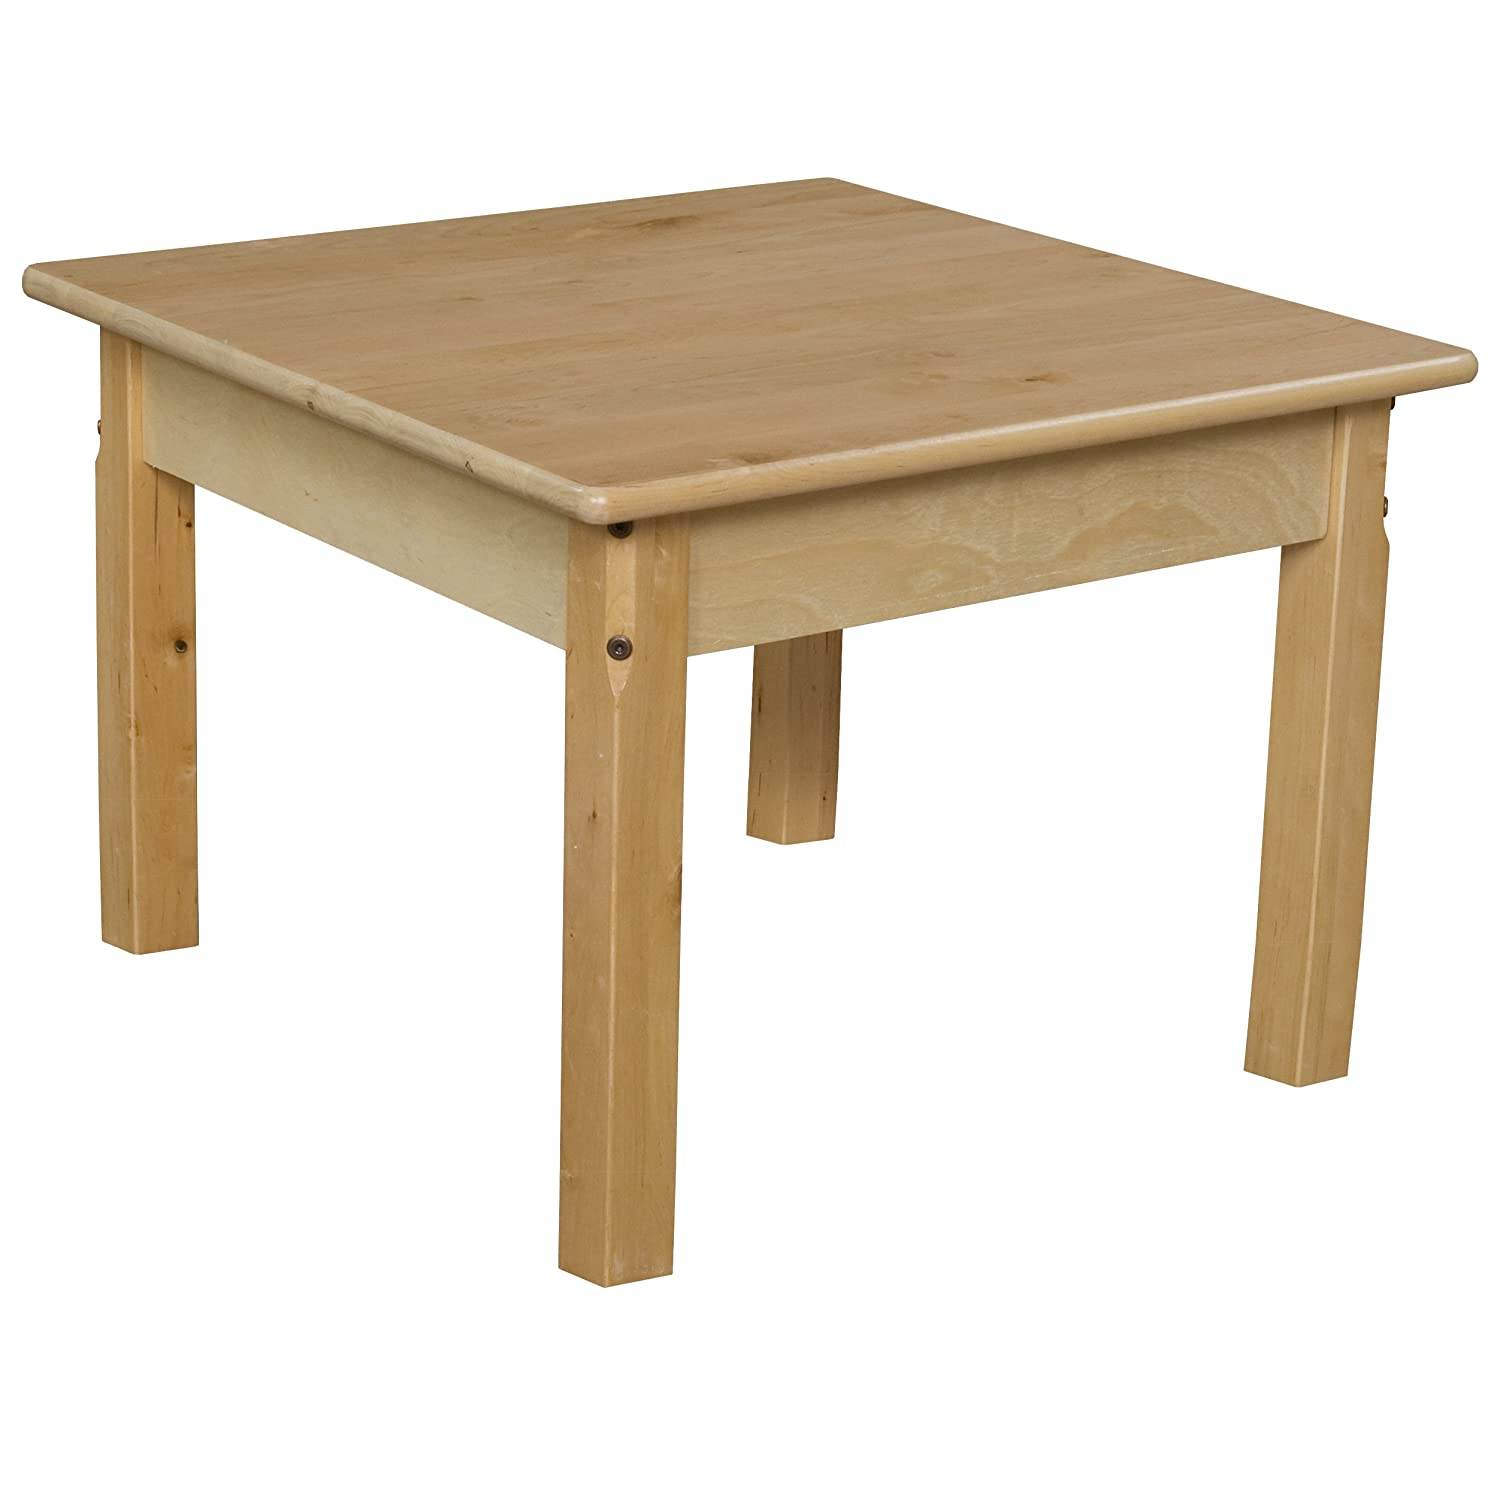 Wood Designs WD82426 24 Square Hardwood Table with 26 Legs Natural